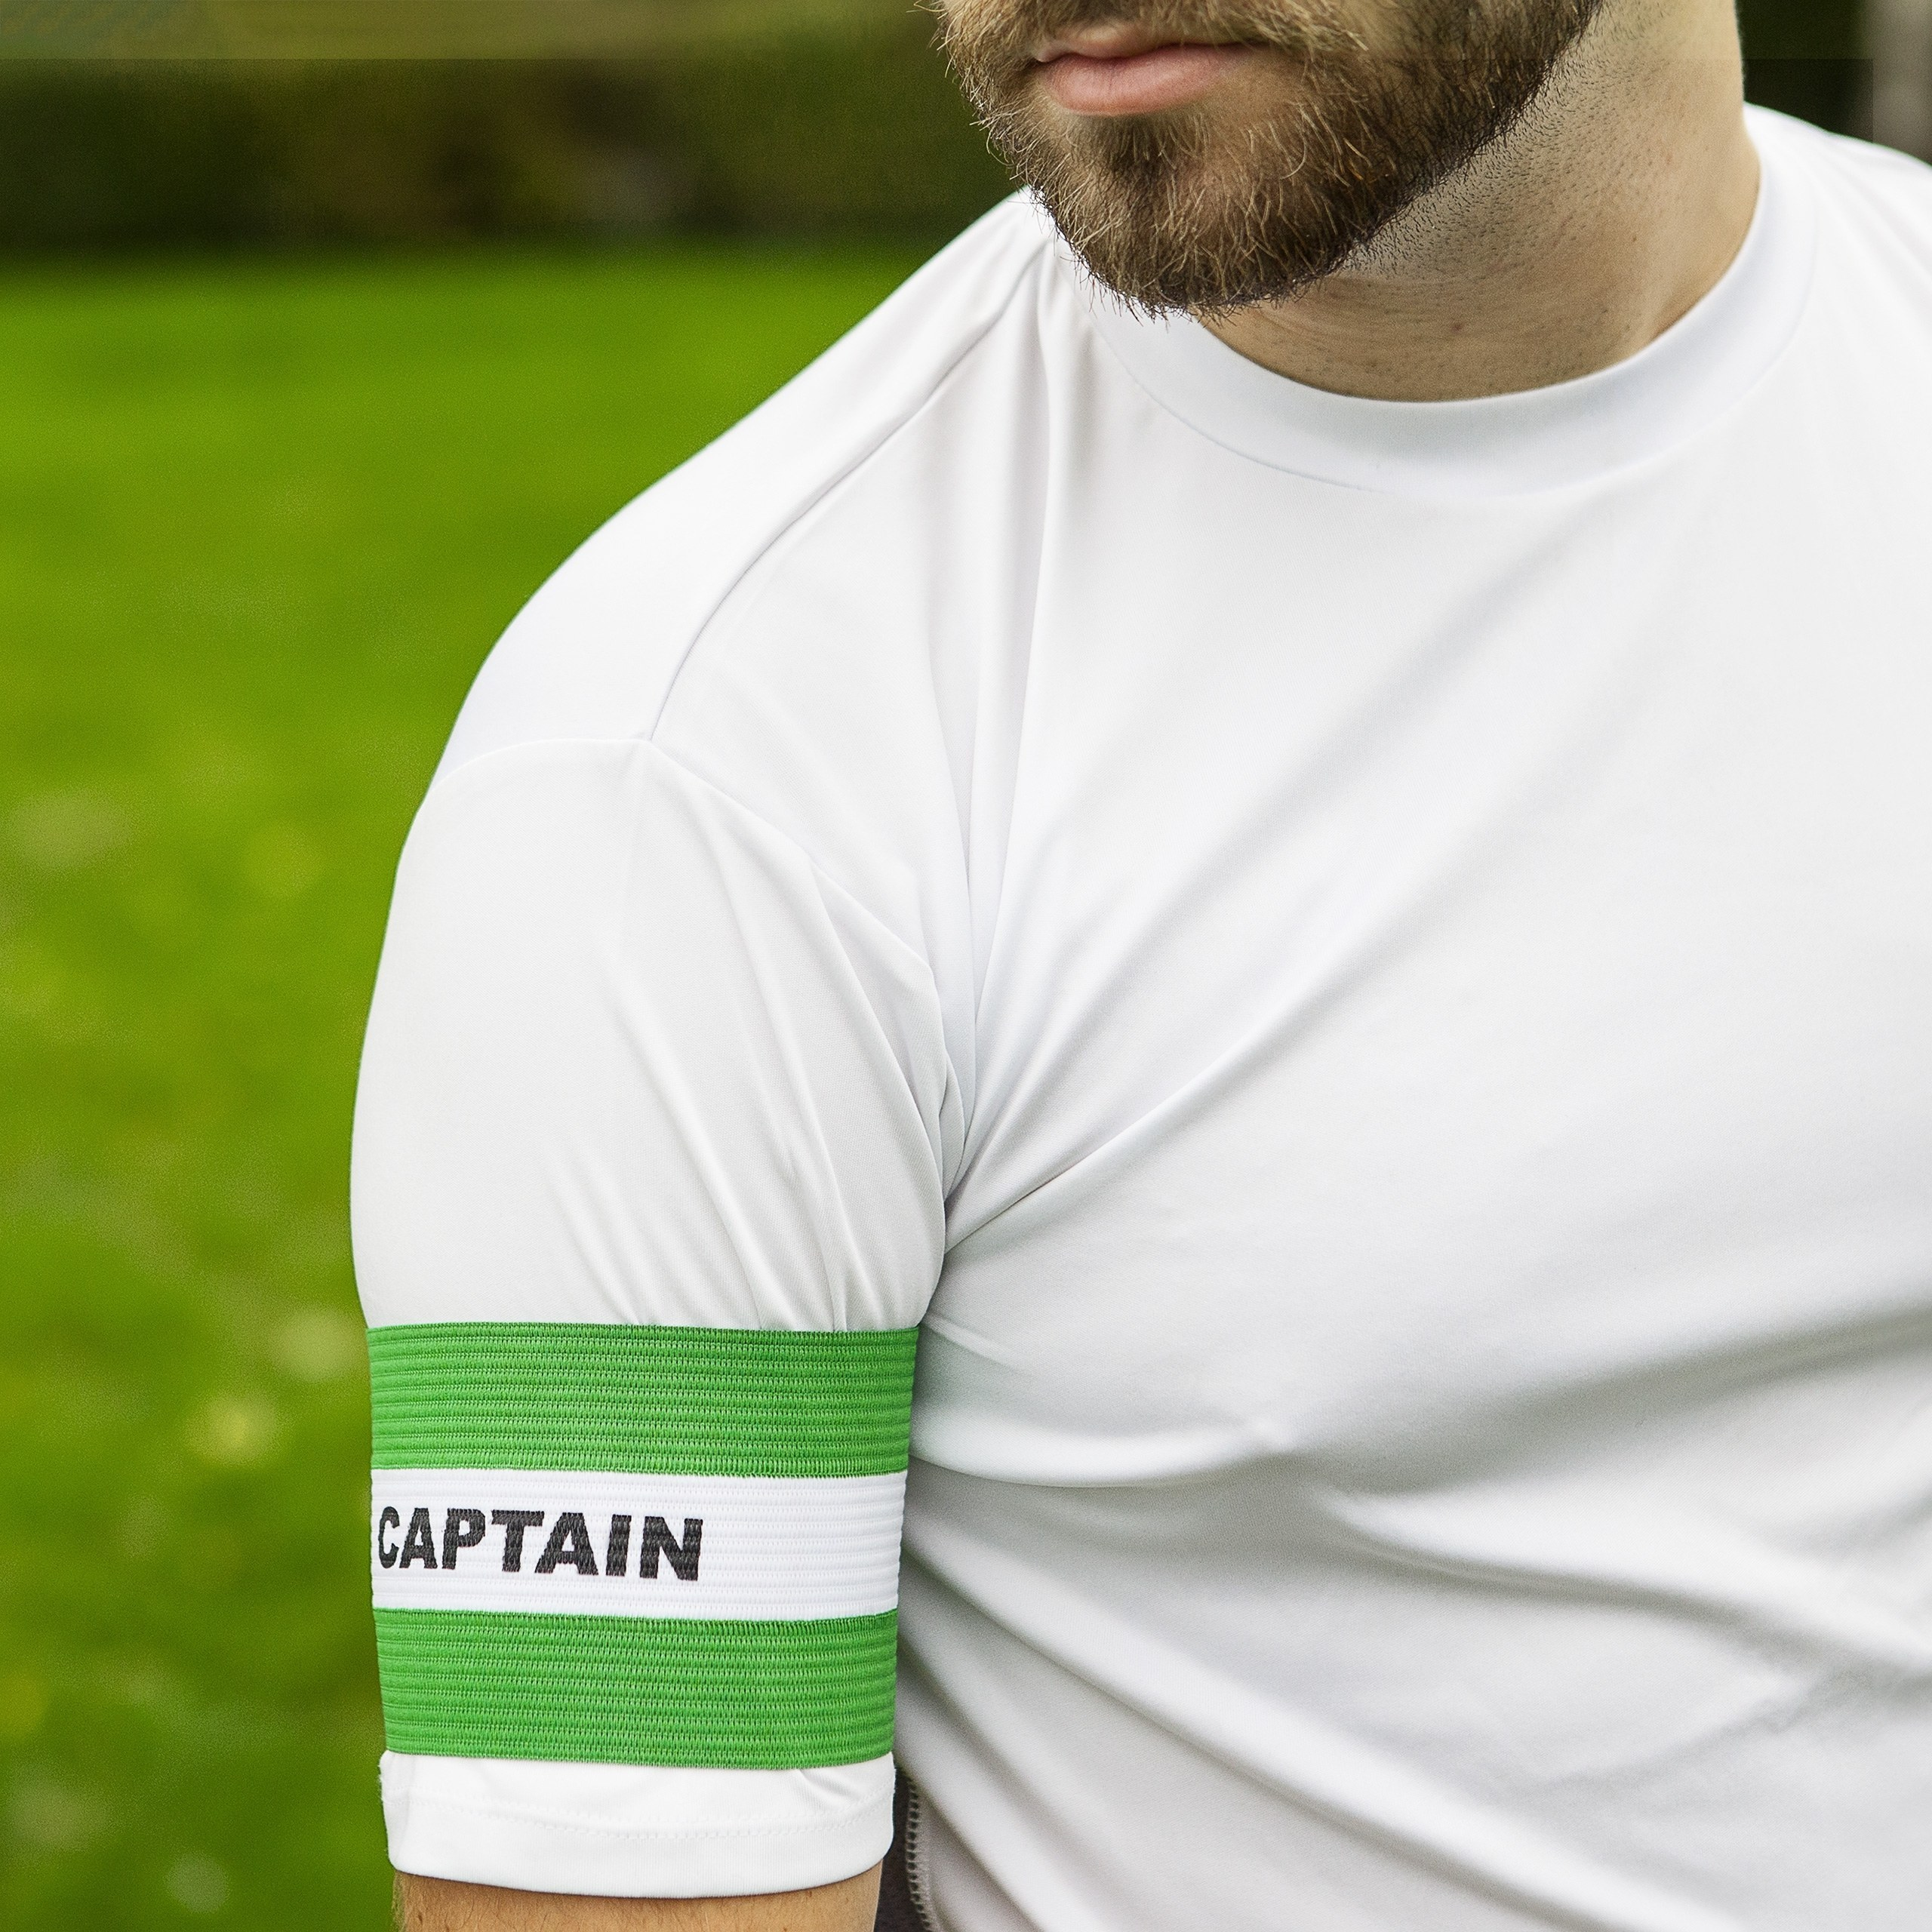 Green Captains Armband